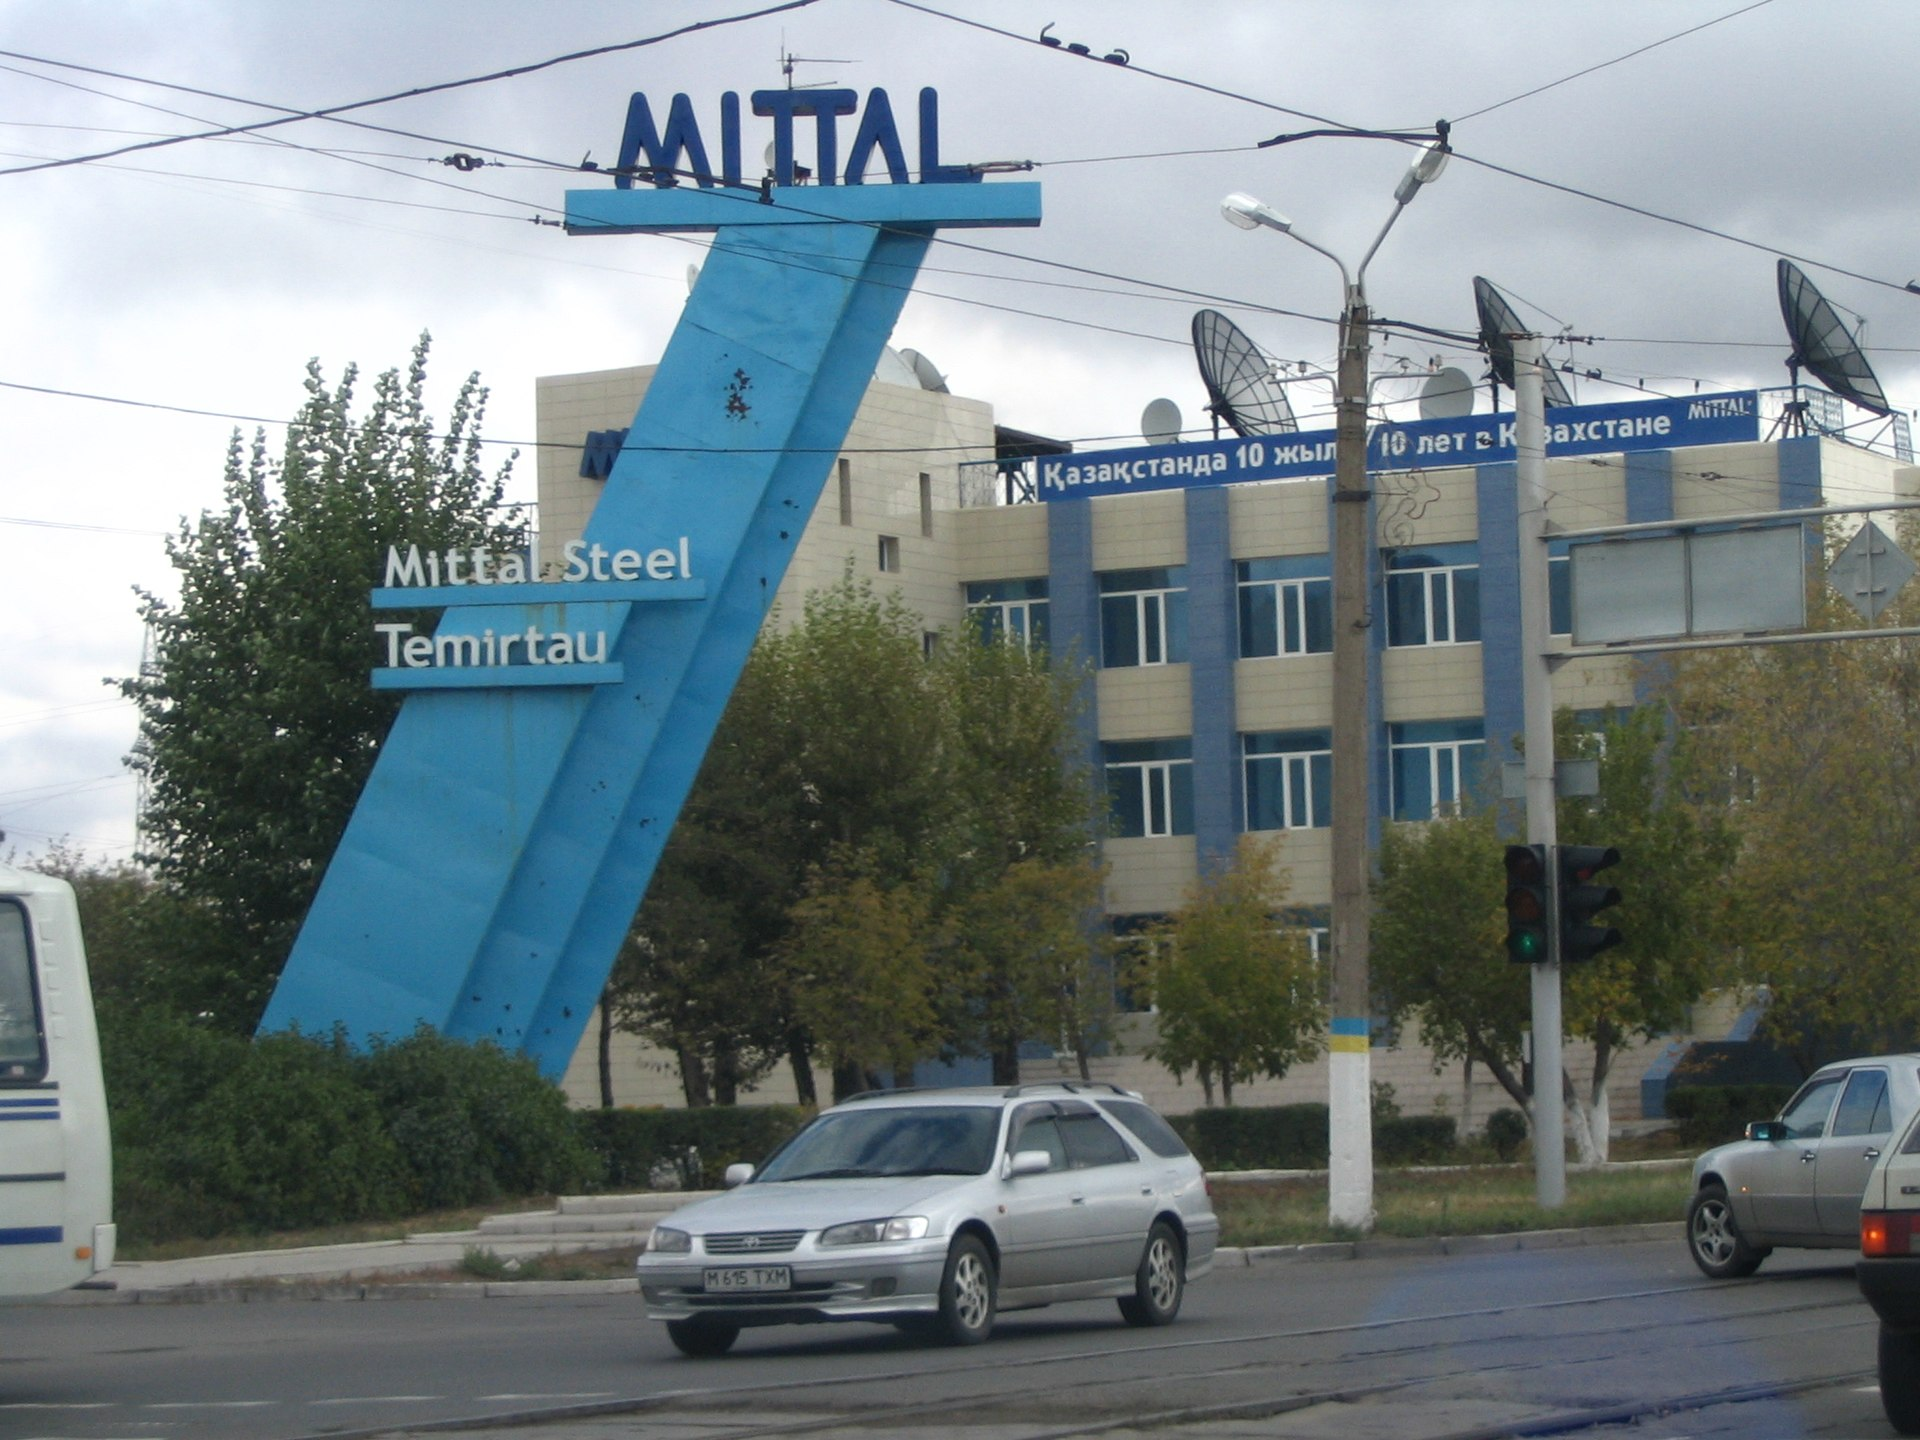 mittal steel in 2006 Mittal steel company nv was one of the world's largest steel producers by volume, and also one of the largest in turnover the indian owned company is now part of arcelormittal  [1].